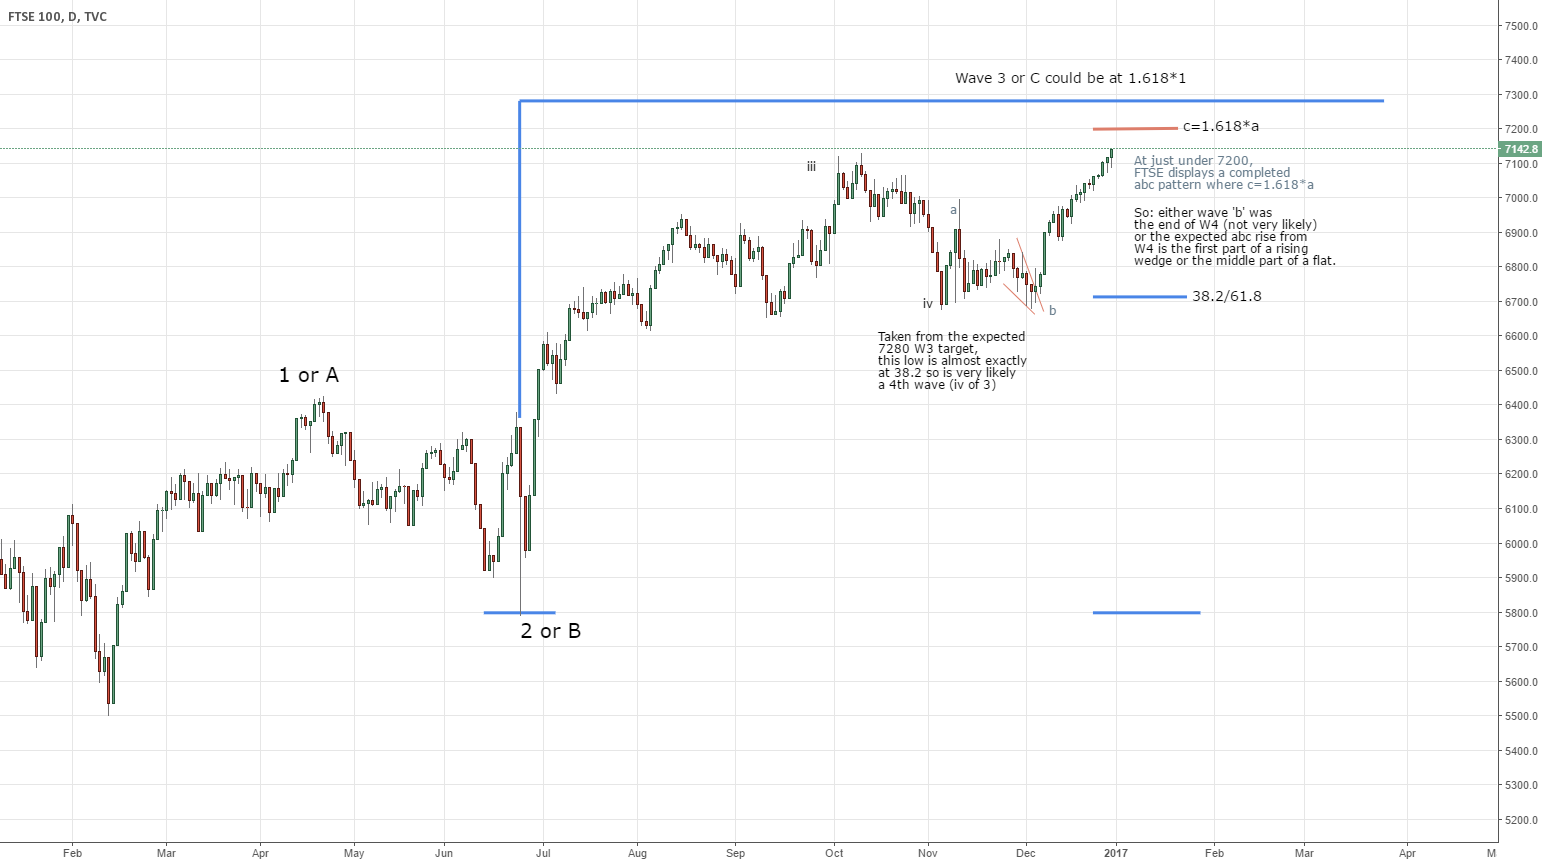 FTSE possible W3 target at 7280